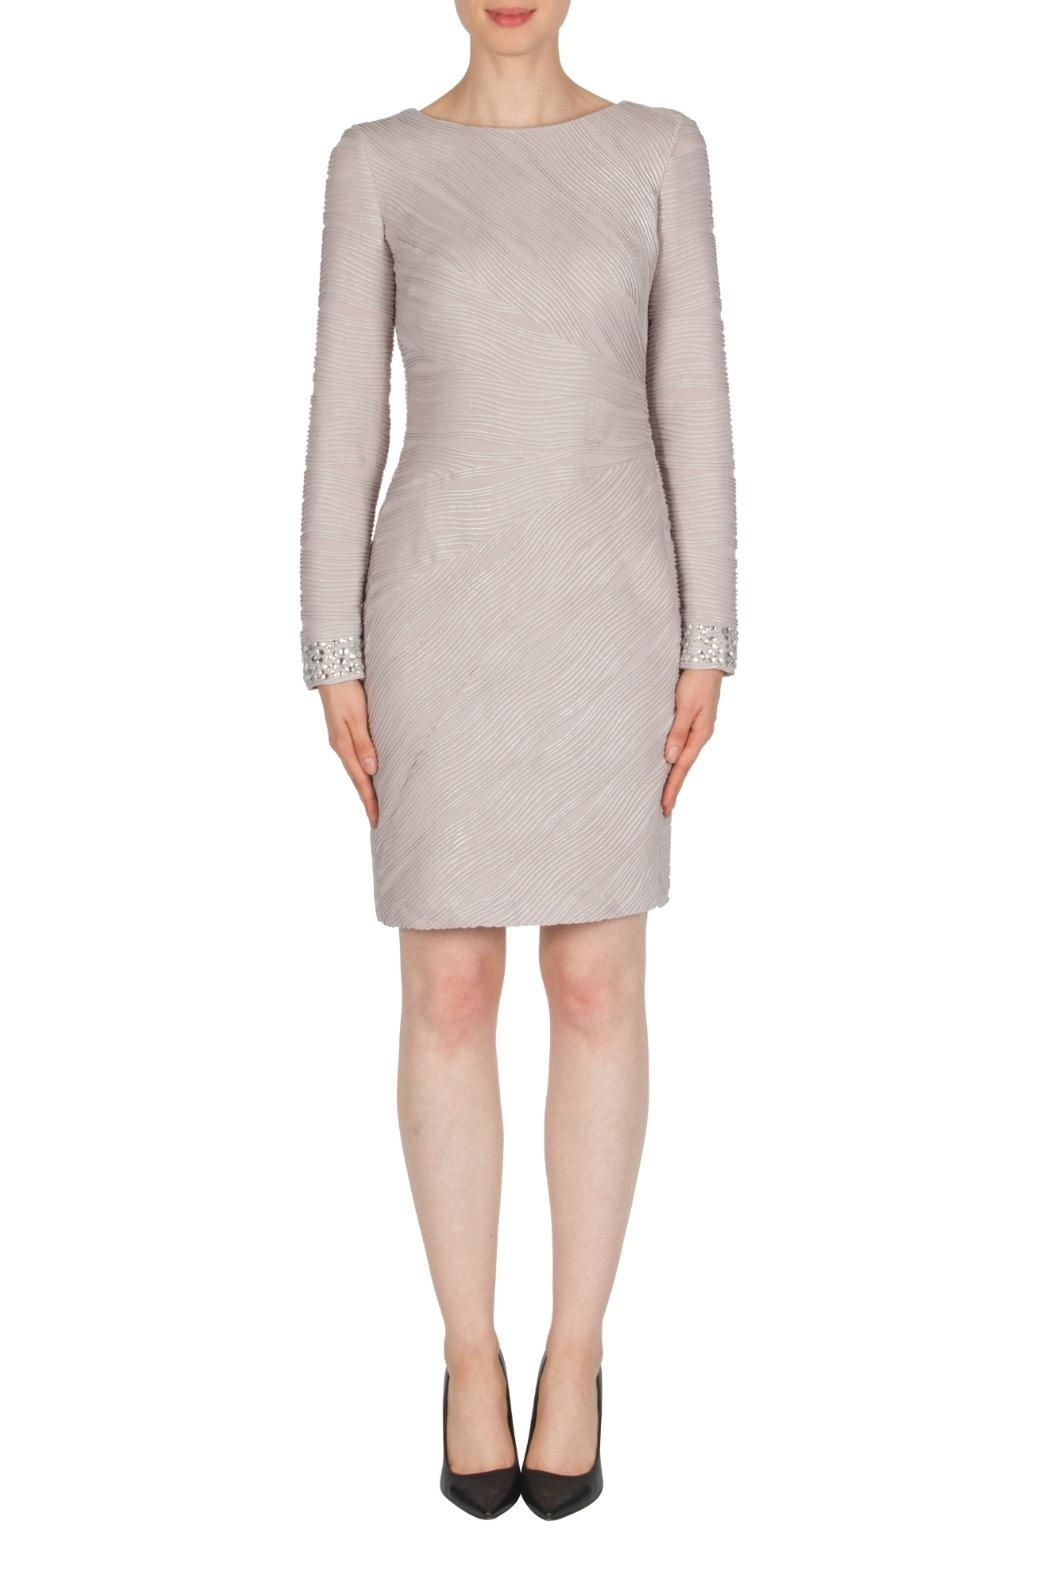 Joseph Ribkoff Holiday Dress - Front Cropped Image